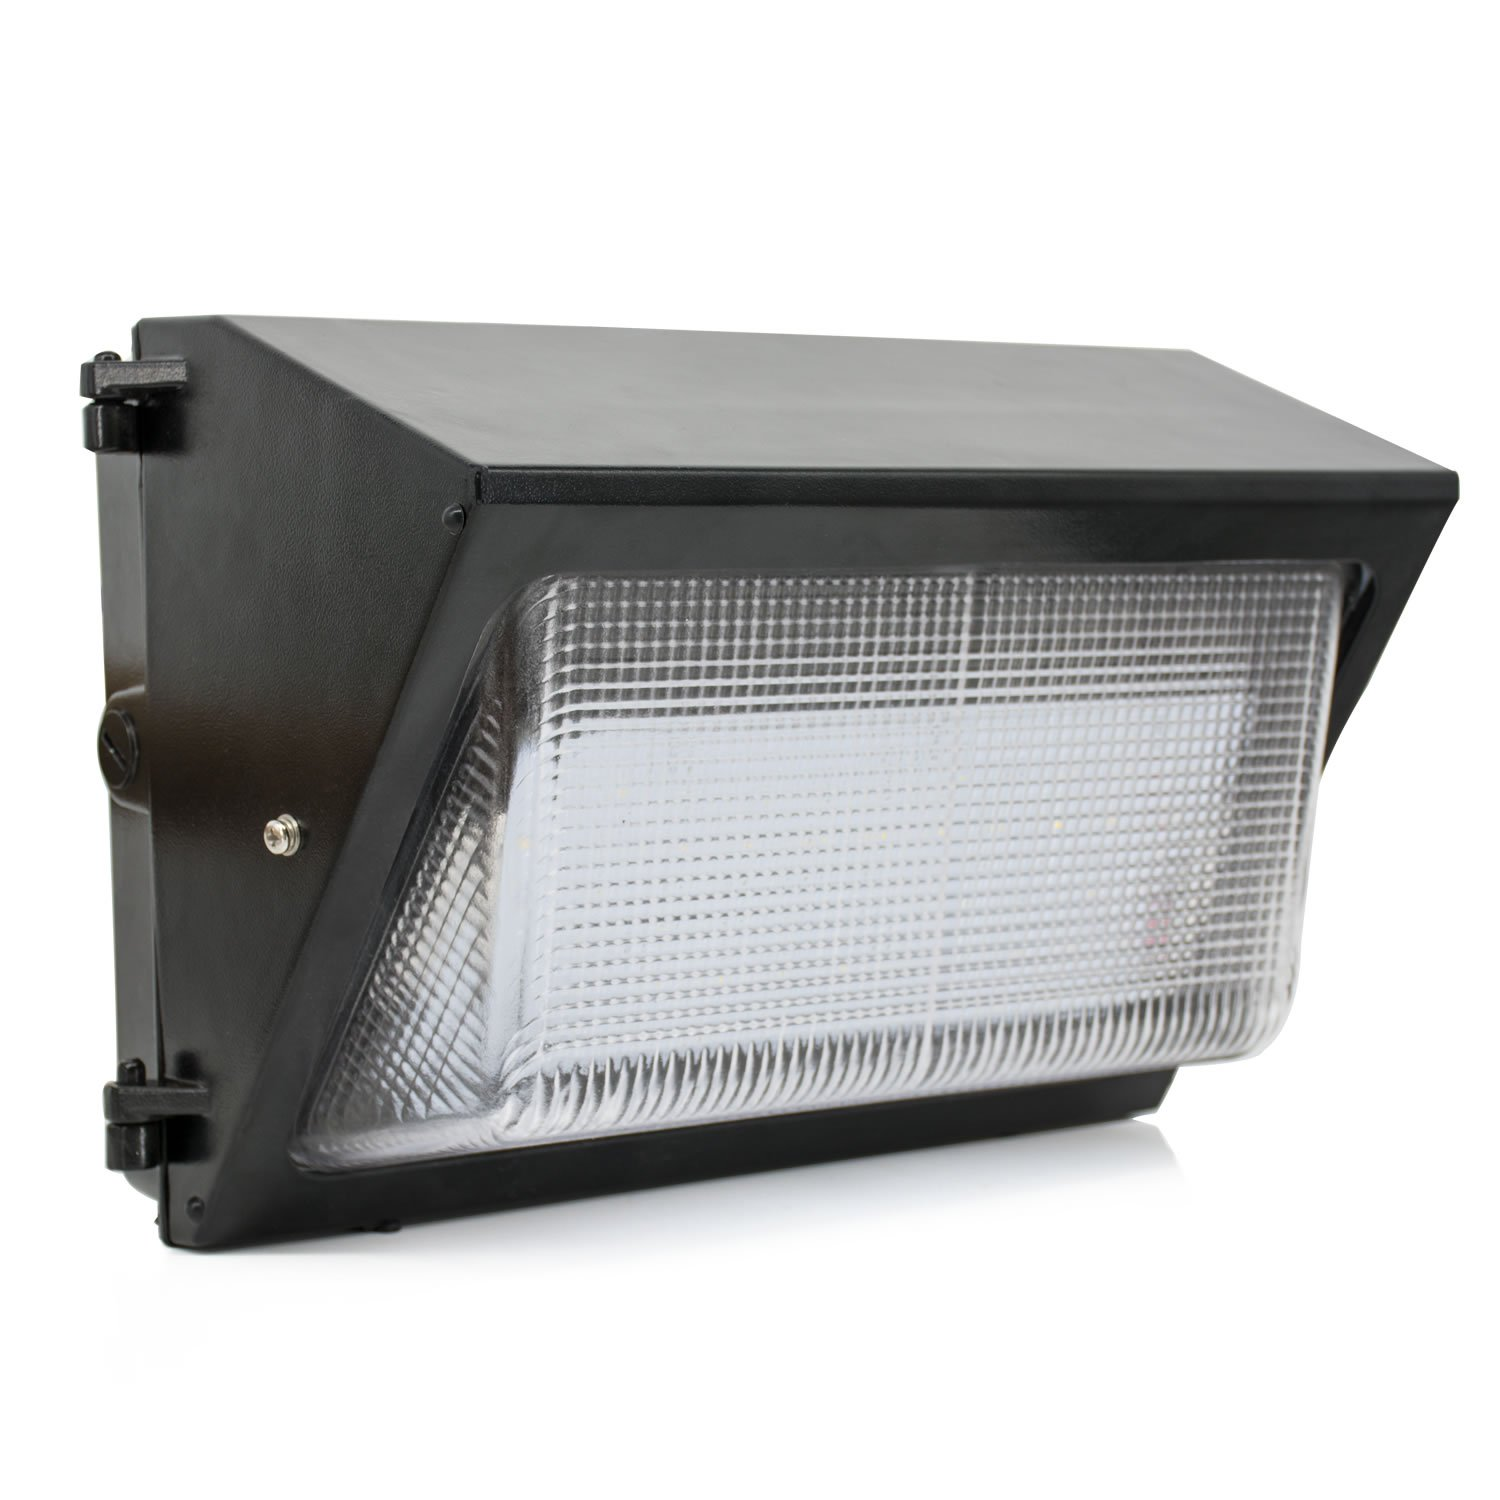 JESLED 120W LED Wall Pack Light,Wall Pack LED Outdoor Security Lighting Fixtures, 5000K Daylight White, 15360lm, 400-600 Watt HPS/HID Replacement, AC100-277V Industrial, Commercial, Residential